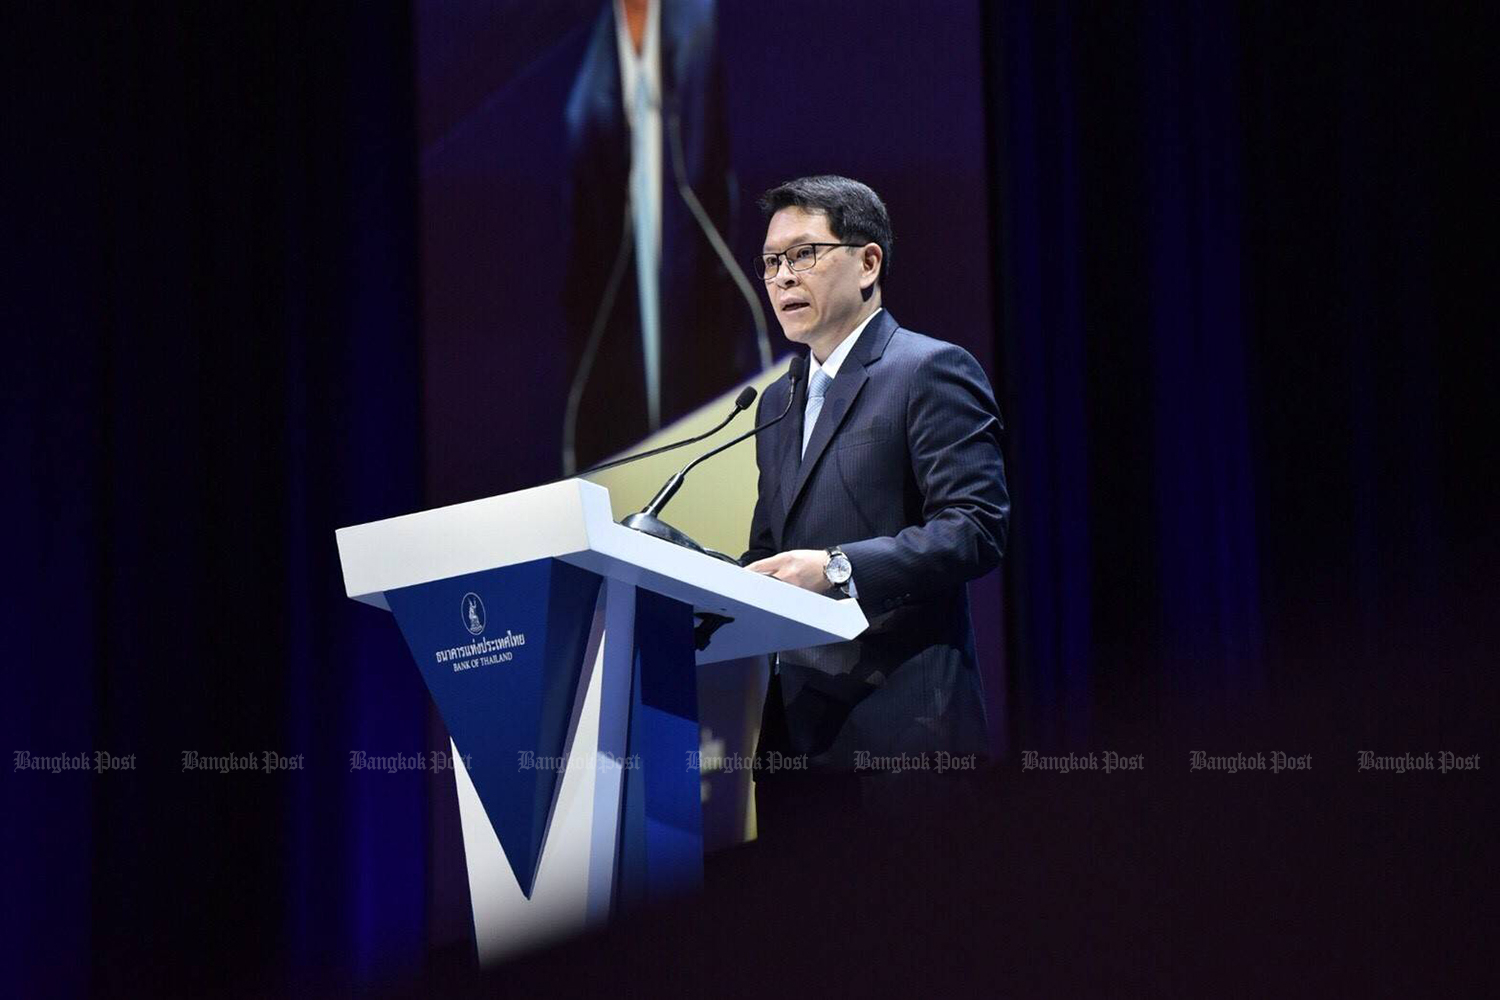 Bank of Thailand governor Veerathai Santiprabhob says zero-interest unsecured loans and online shopping are blamed for the country's swelling household debt. (Bangkok Post file photo)